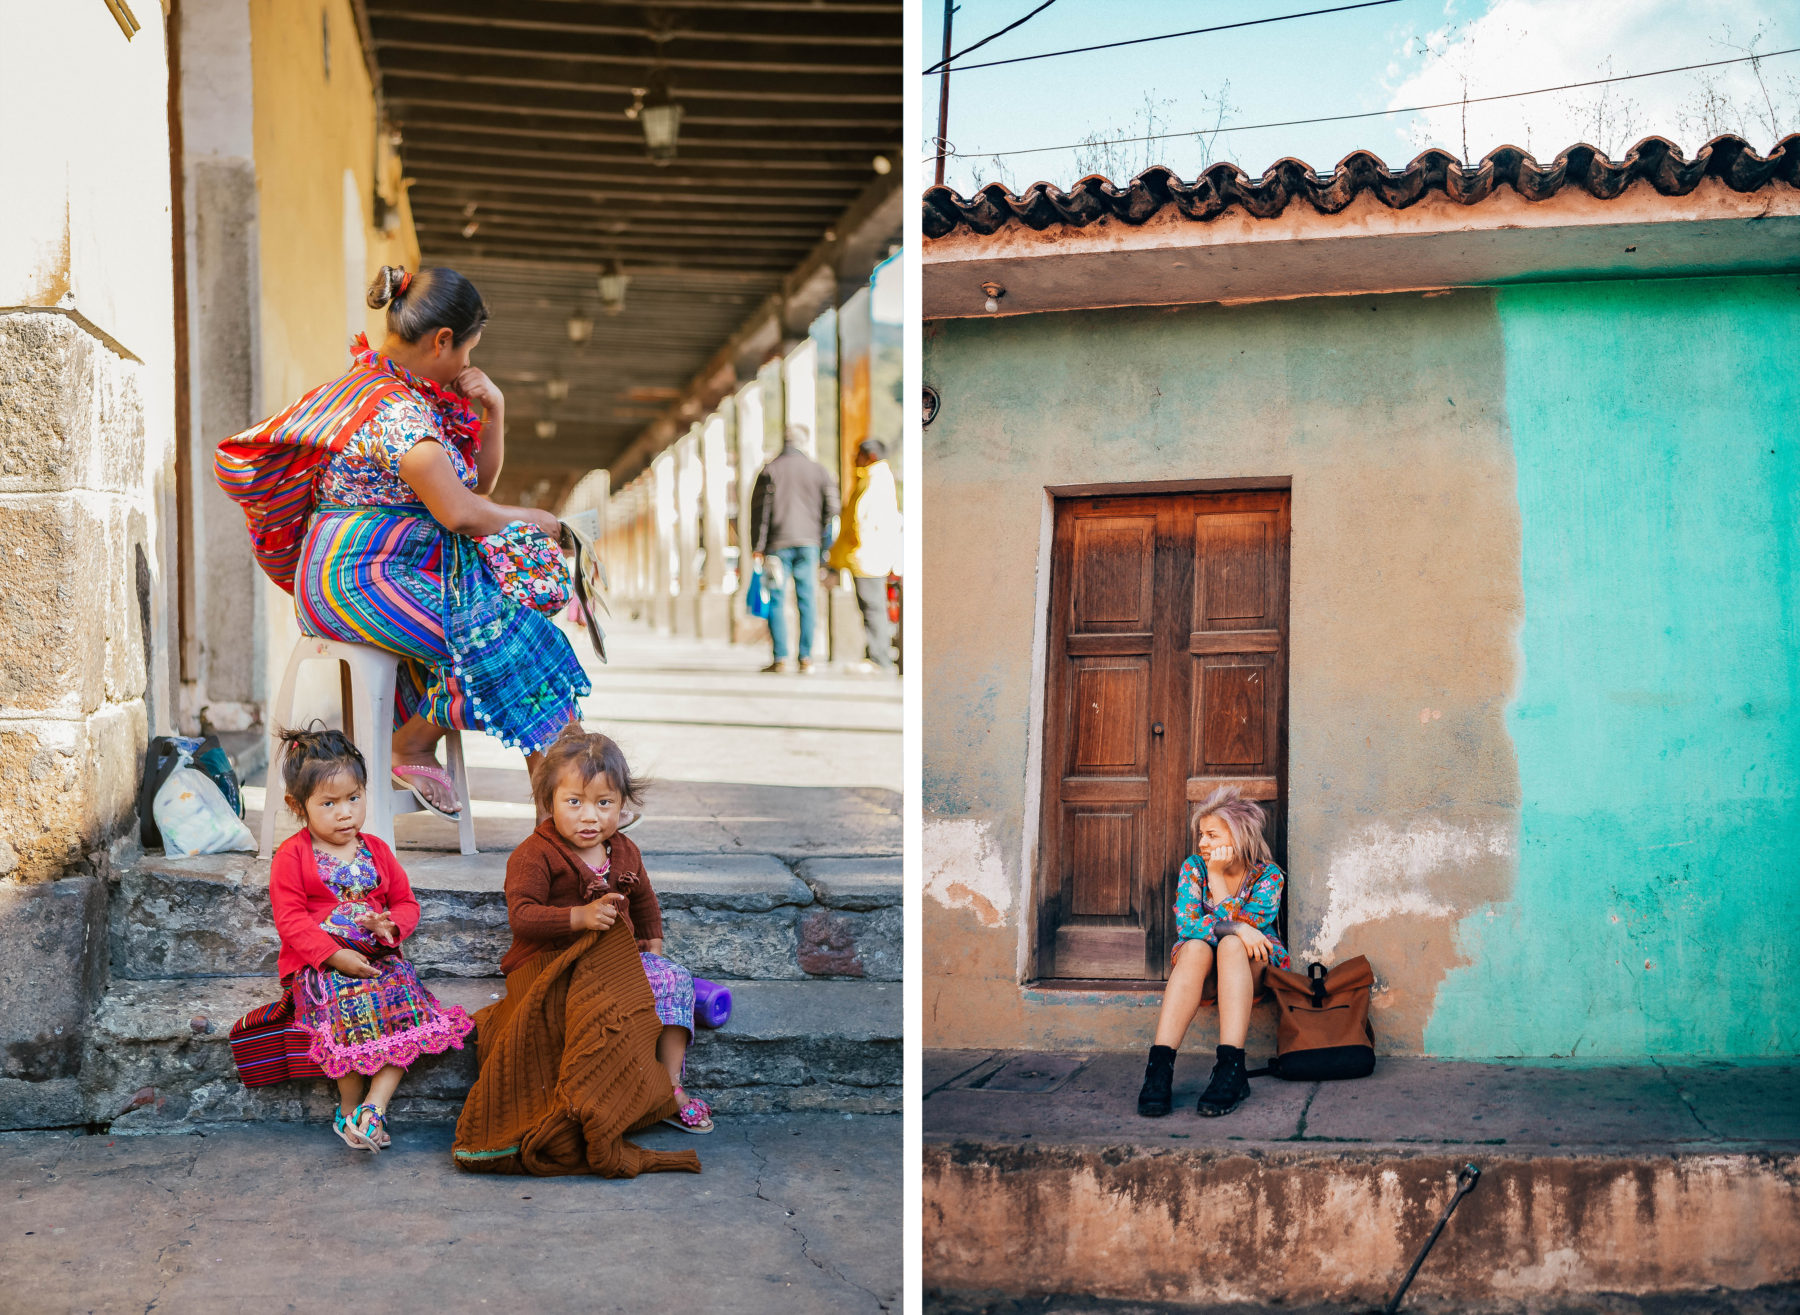 antigua guatemala colourful colonian central america local people volcano streets houses culture kids smiling fruit vendors kids